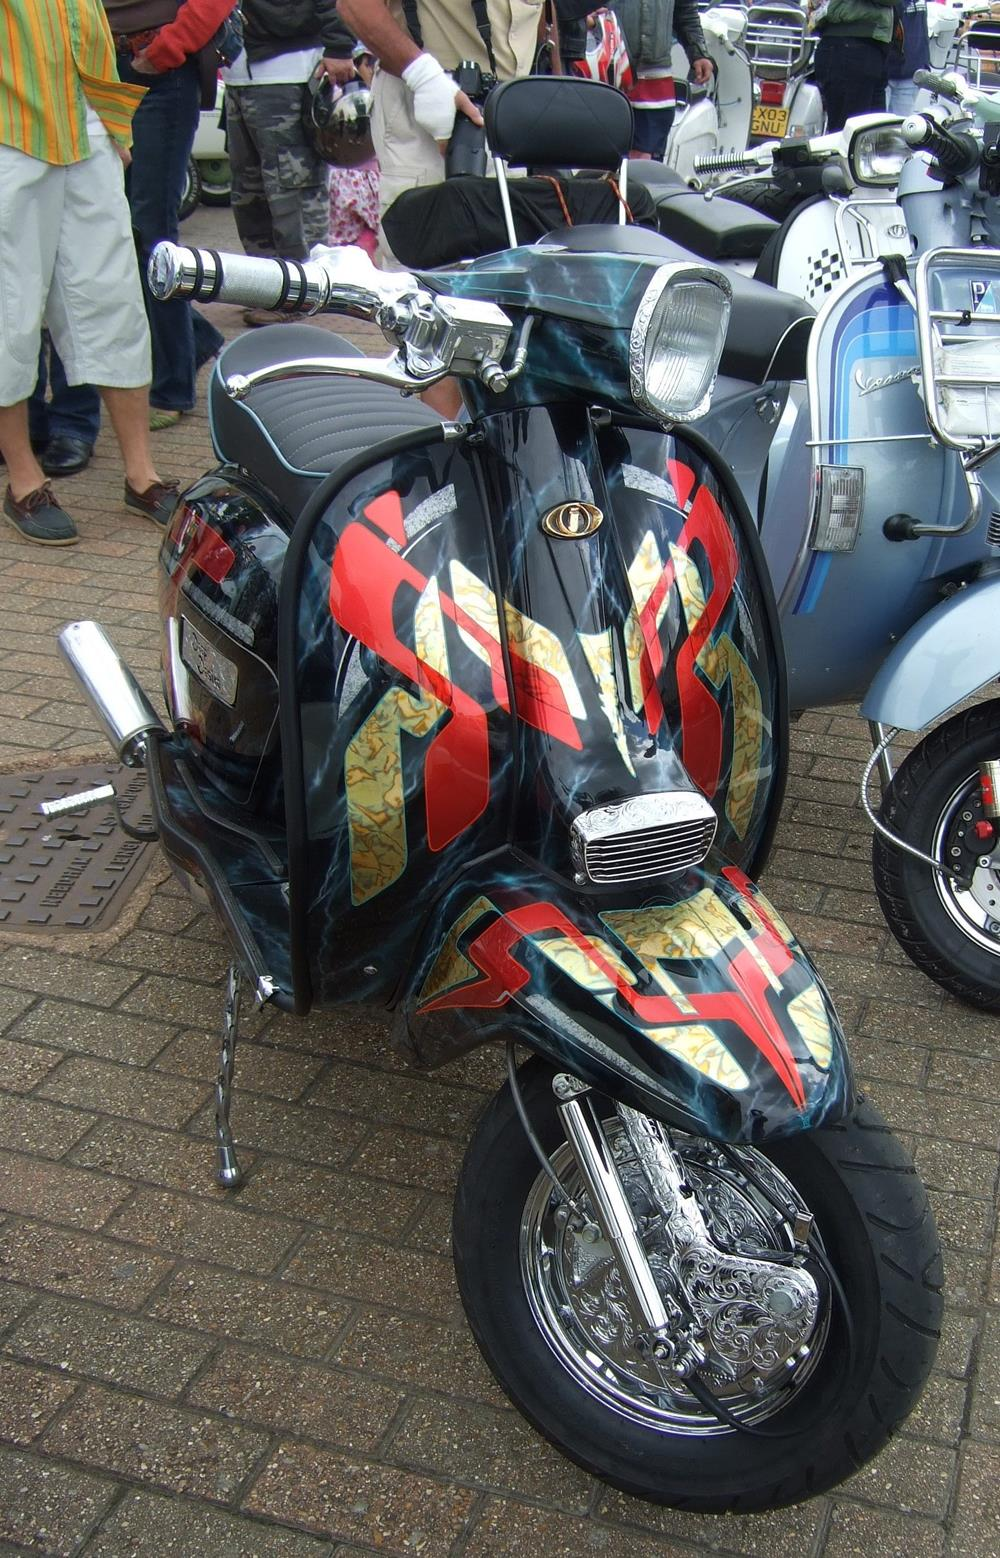 Lambretta with red and gold murals